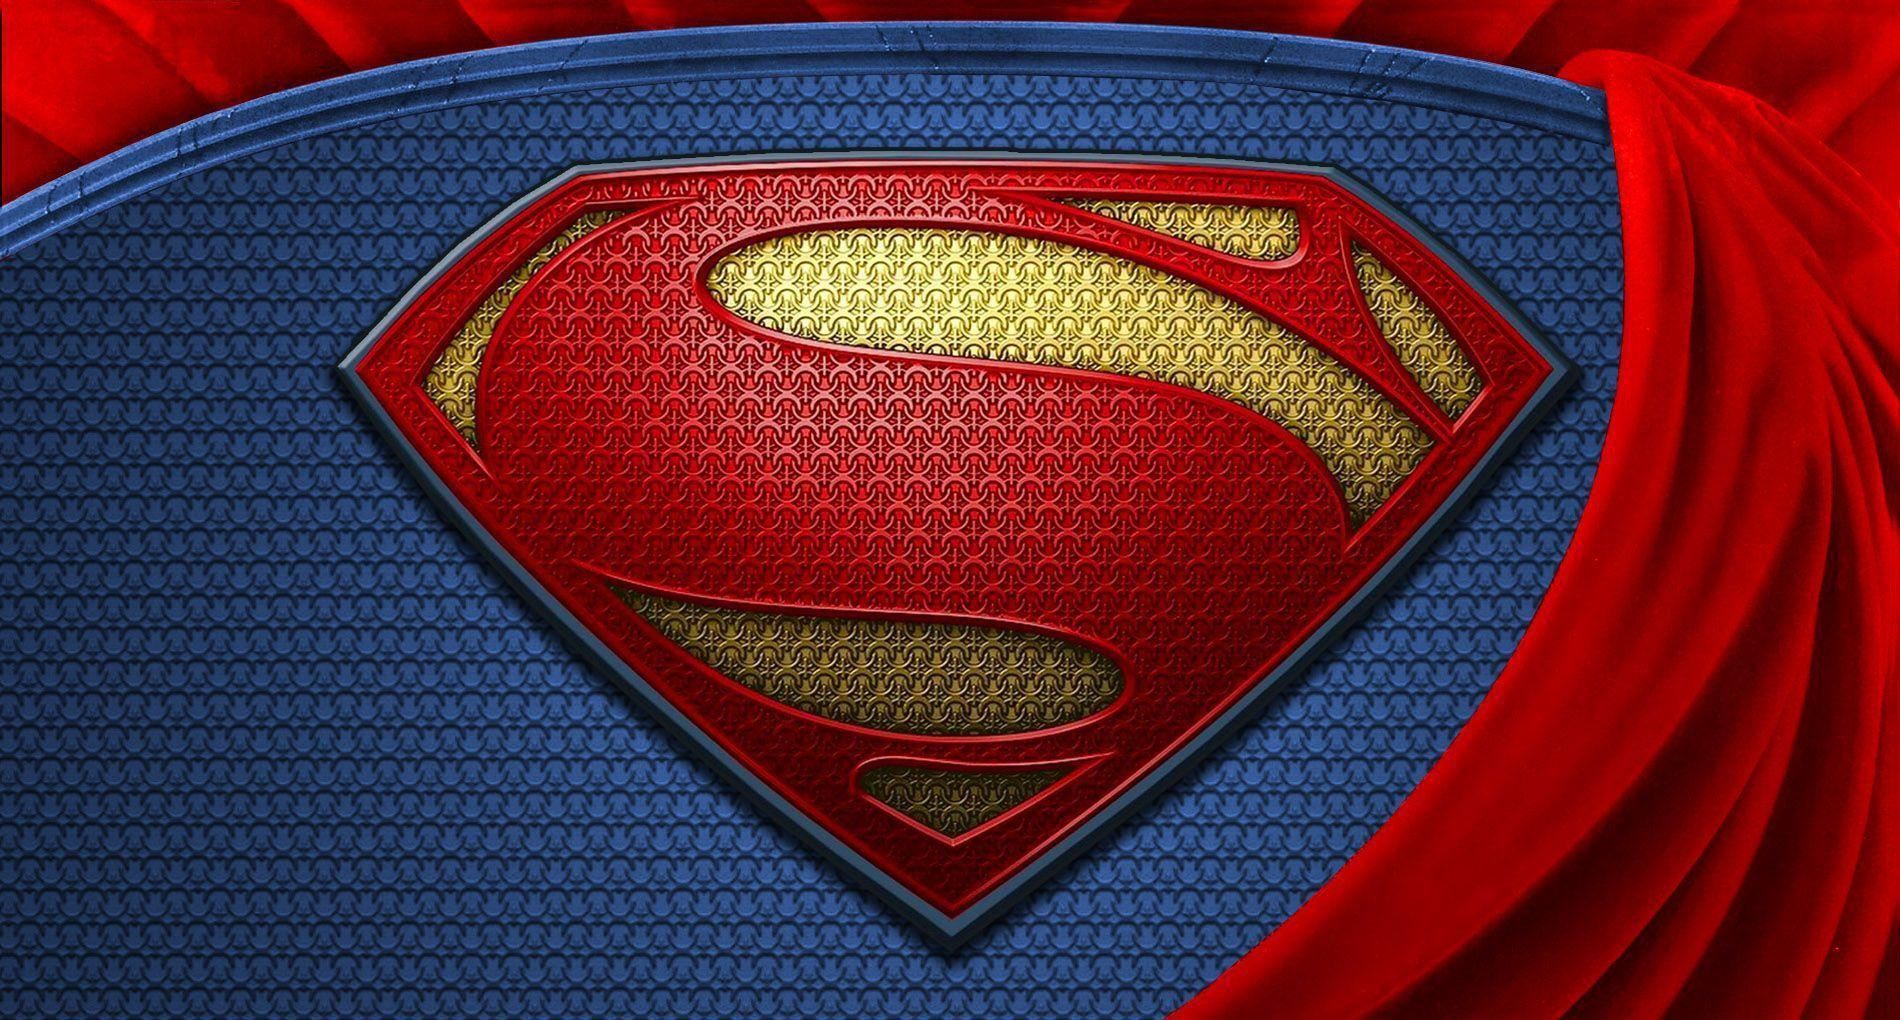 Superman Logo Ipad Background Free Download | Wallpapers ...